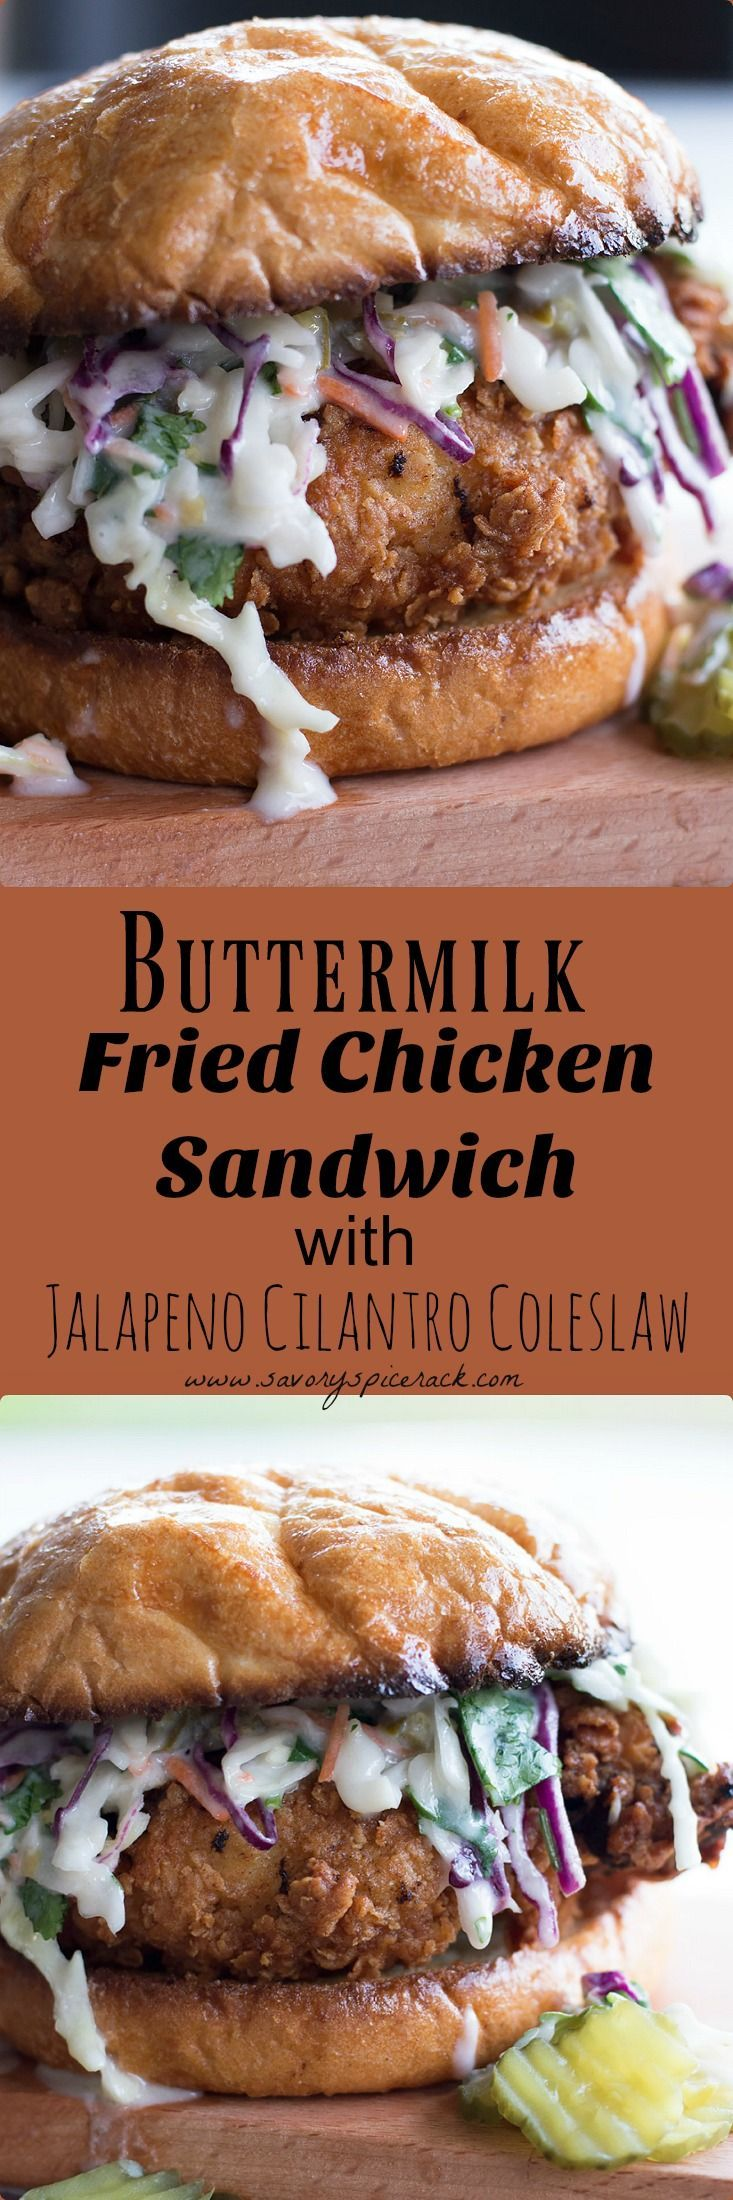 ... Buttermilk Fried Chicken on Pinterest | Fried Chicken, Chicken